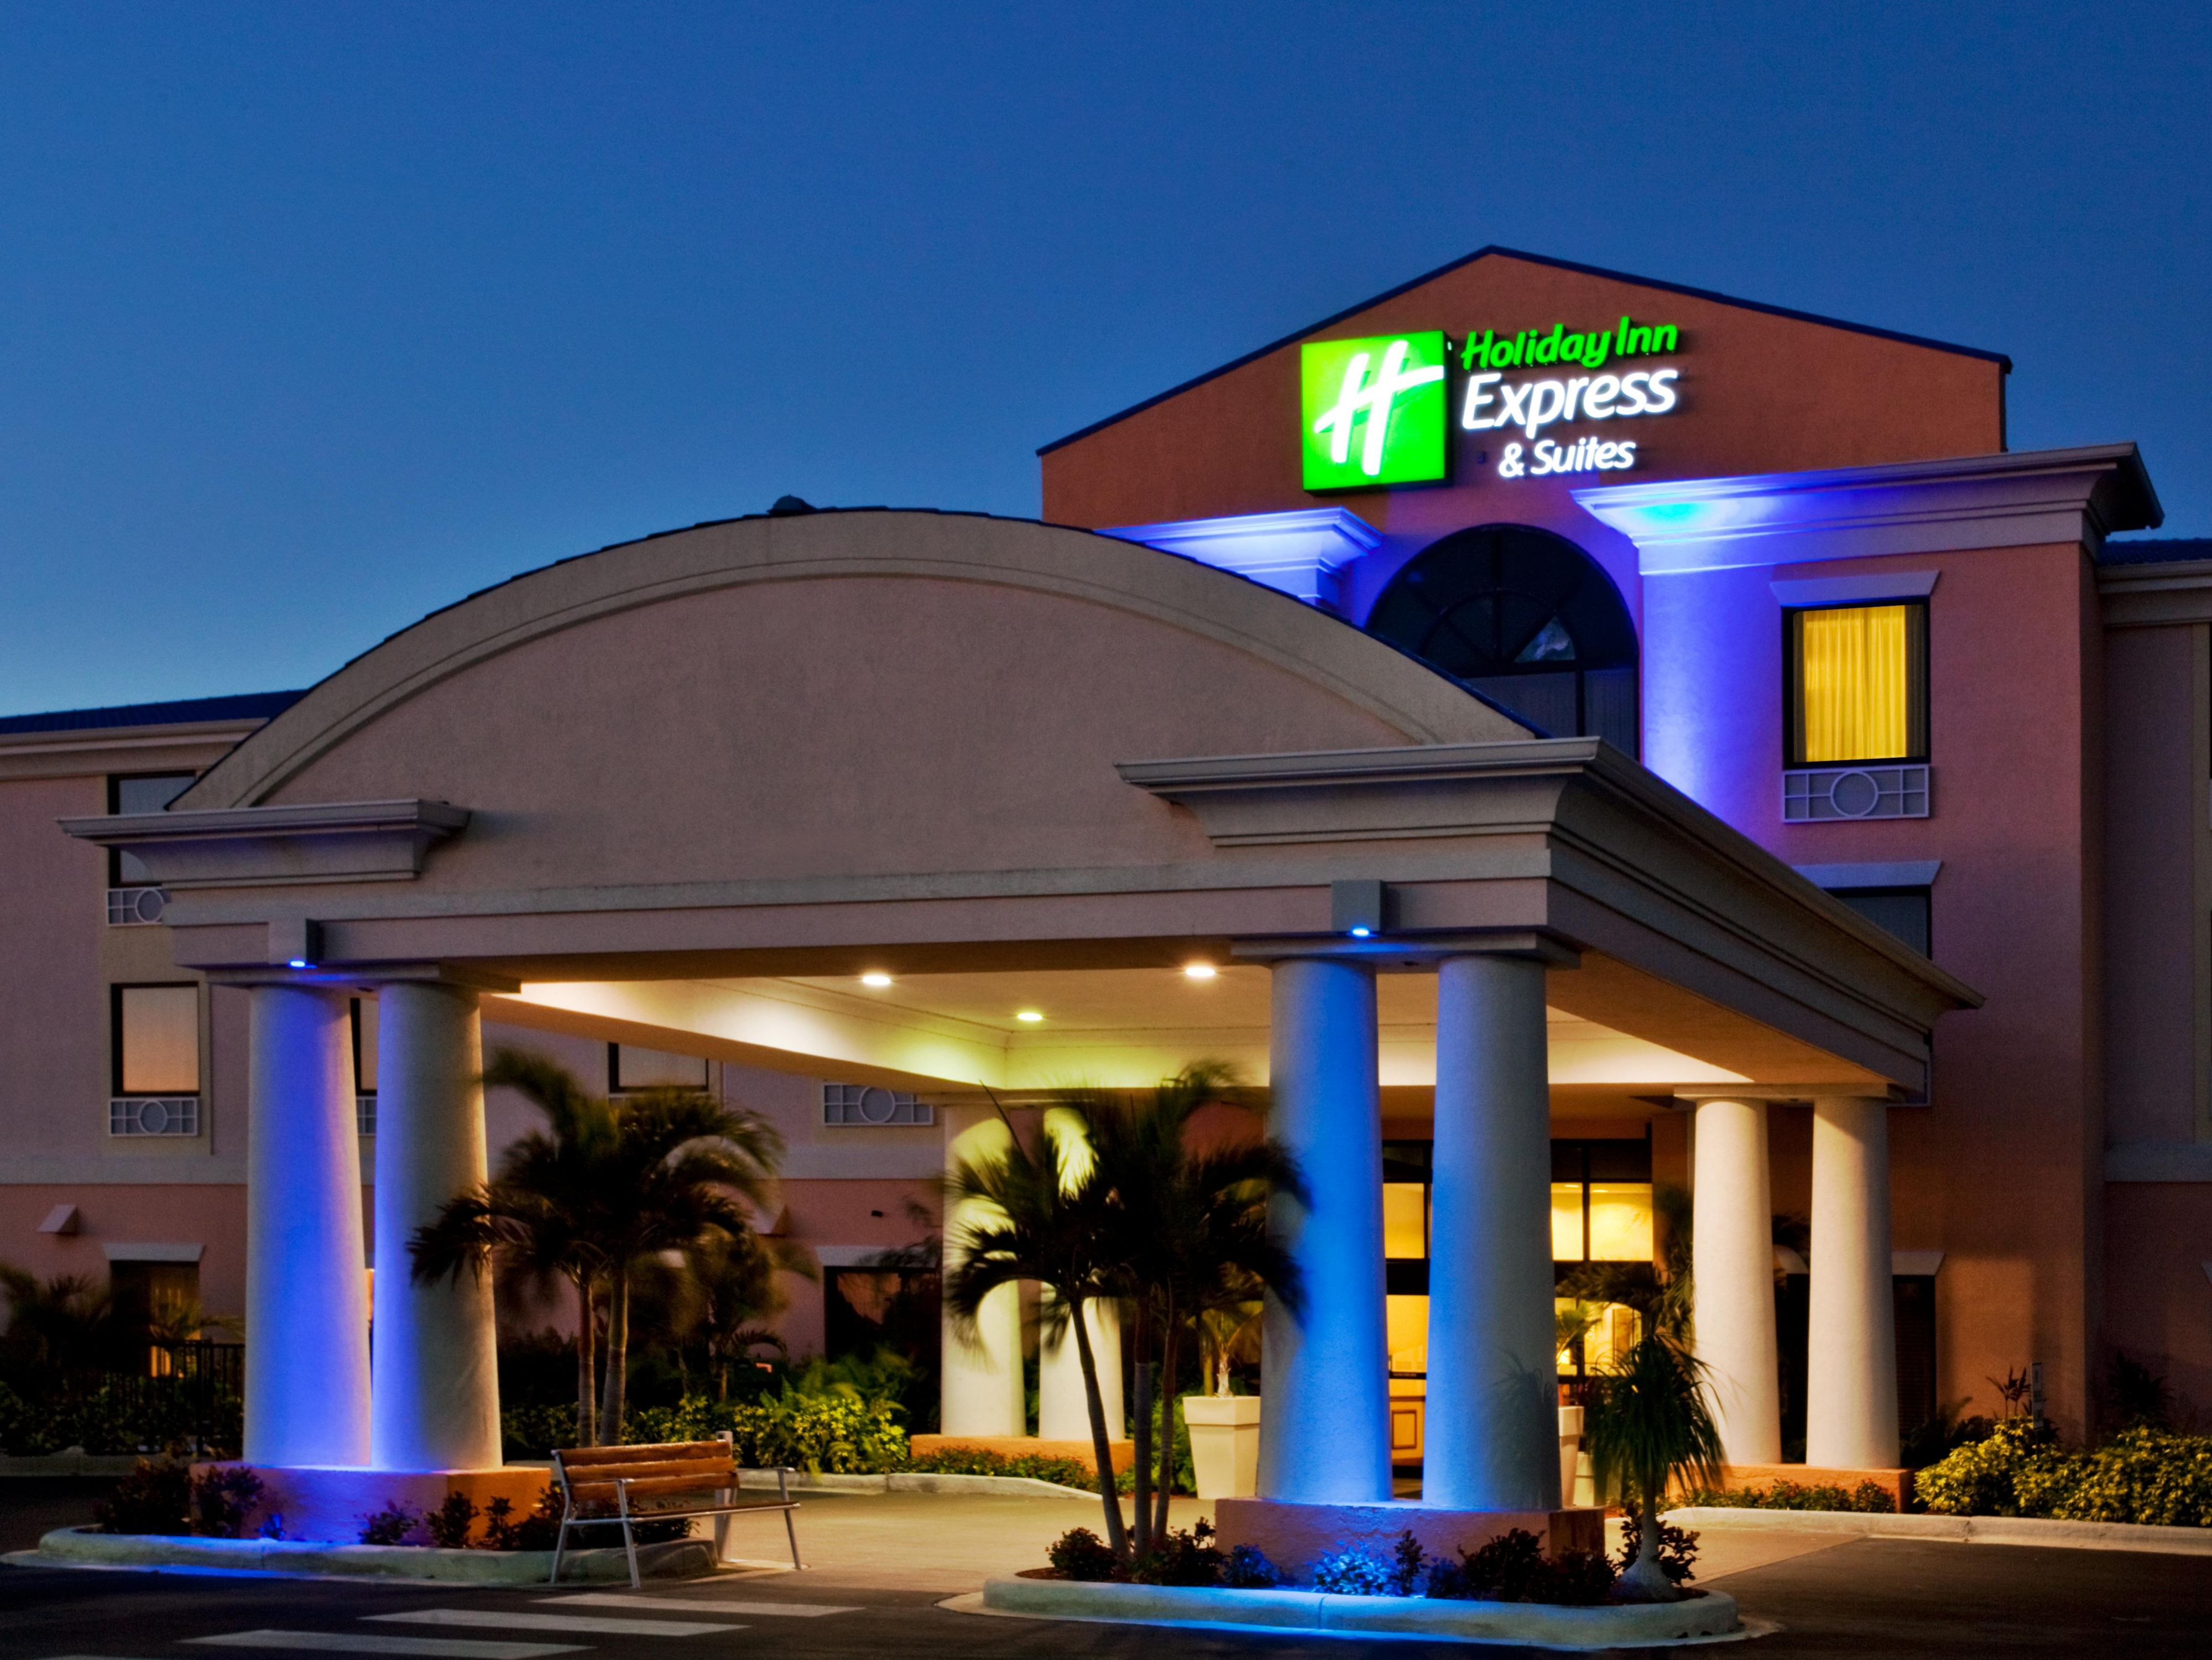 Holiday Inn Express Lake Okeechobee Hotel Exterior Night